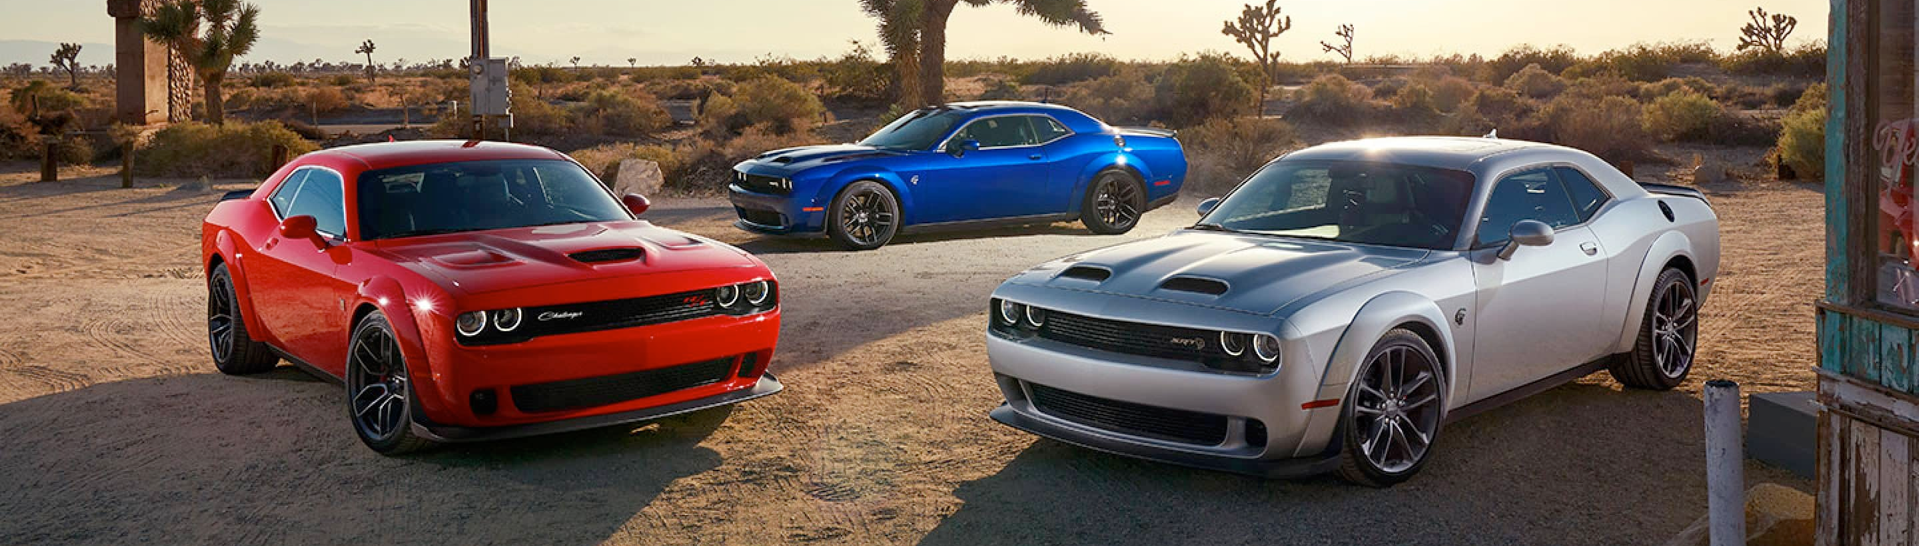 2021 Dodge Challengers on a dirt road.